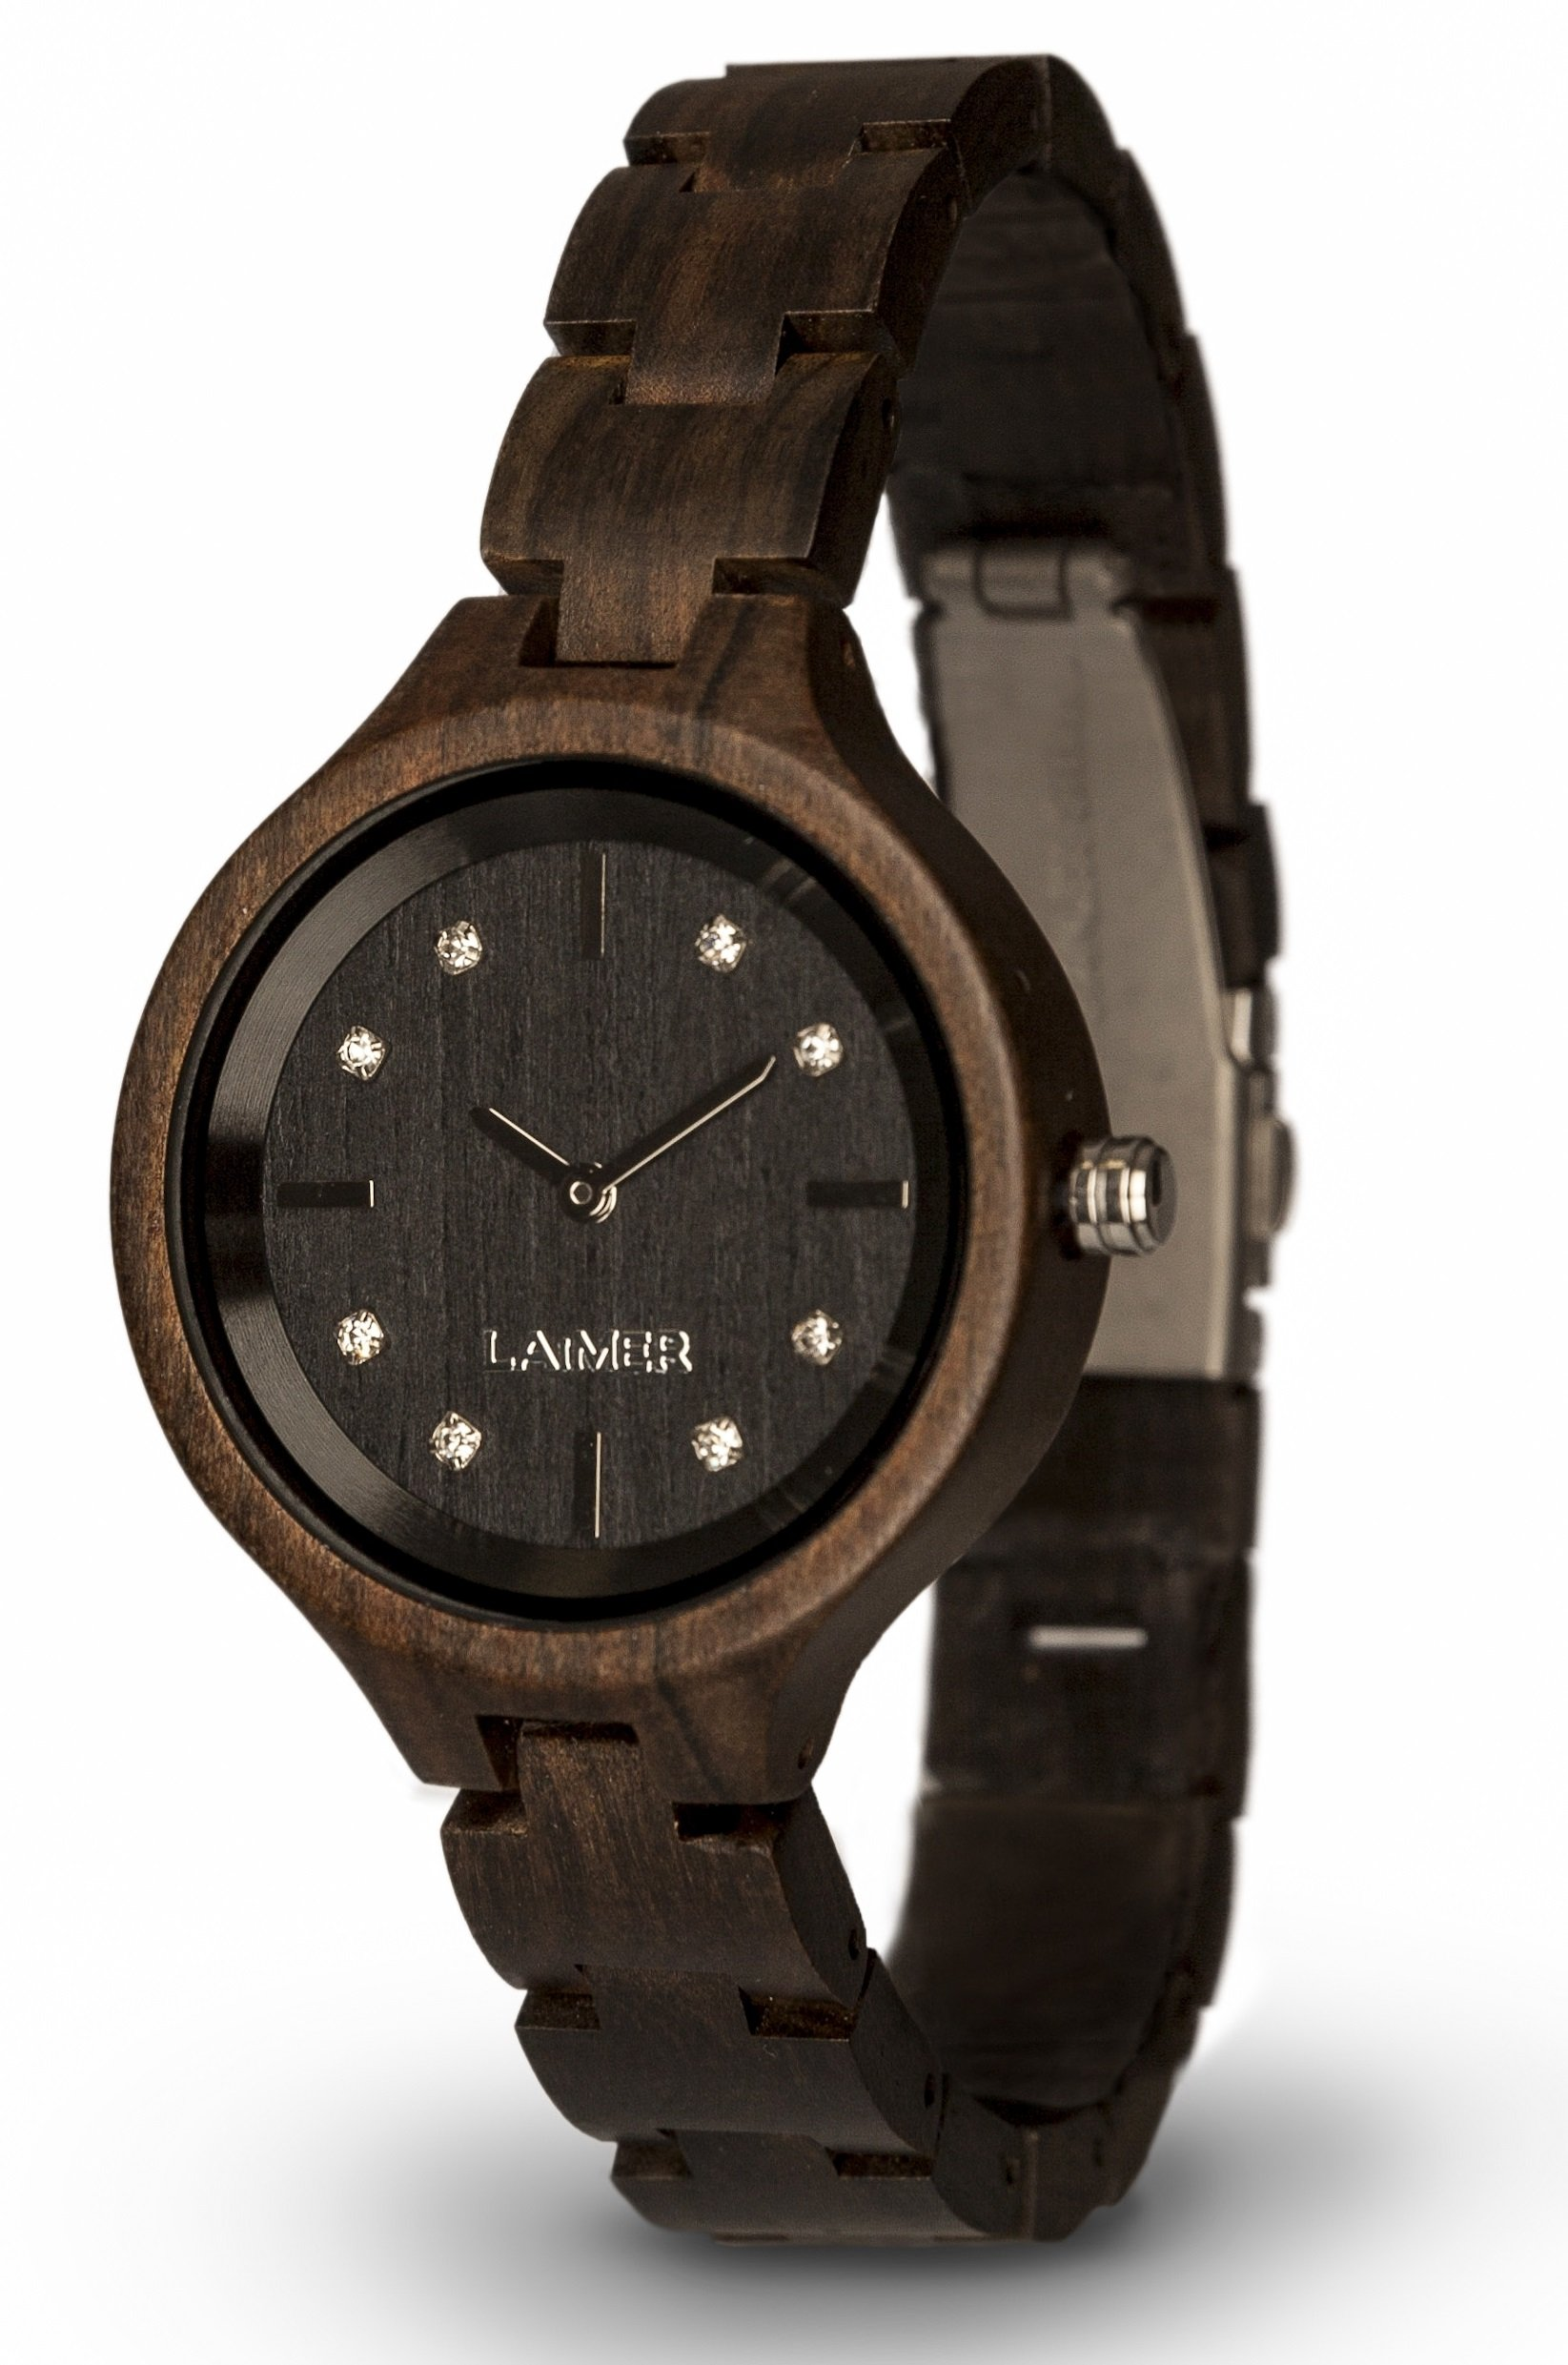 LAiMER Women's Wooden Watch MARIA DARK - Wrist Watch made of natural Maple Wood refined with Swarovski Crystals - Nature & Luxury